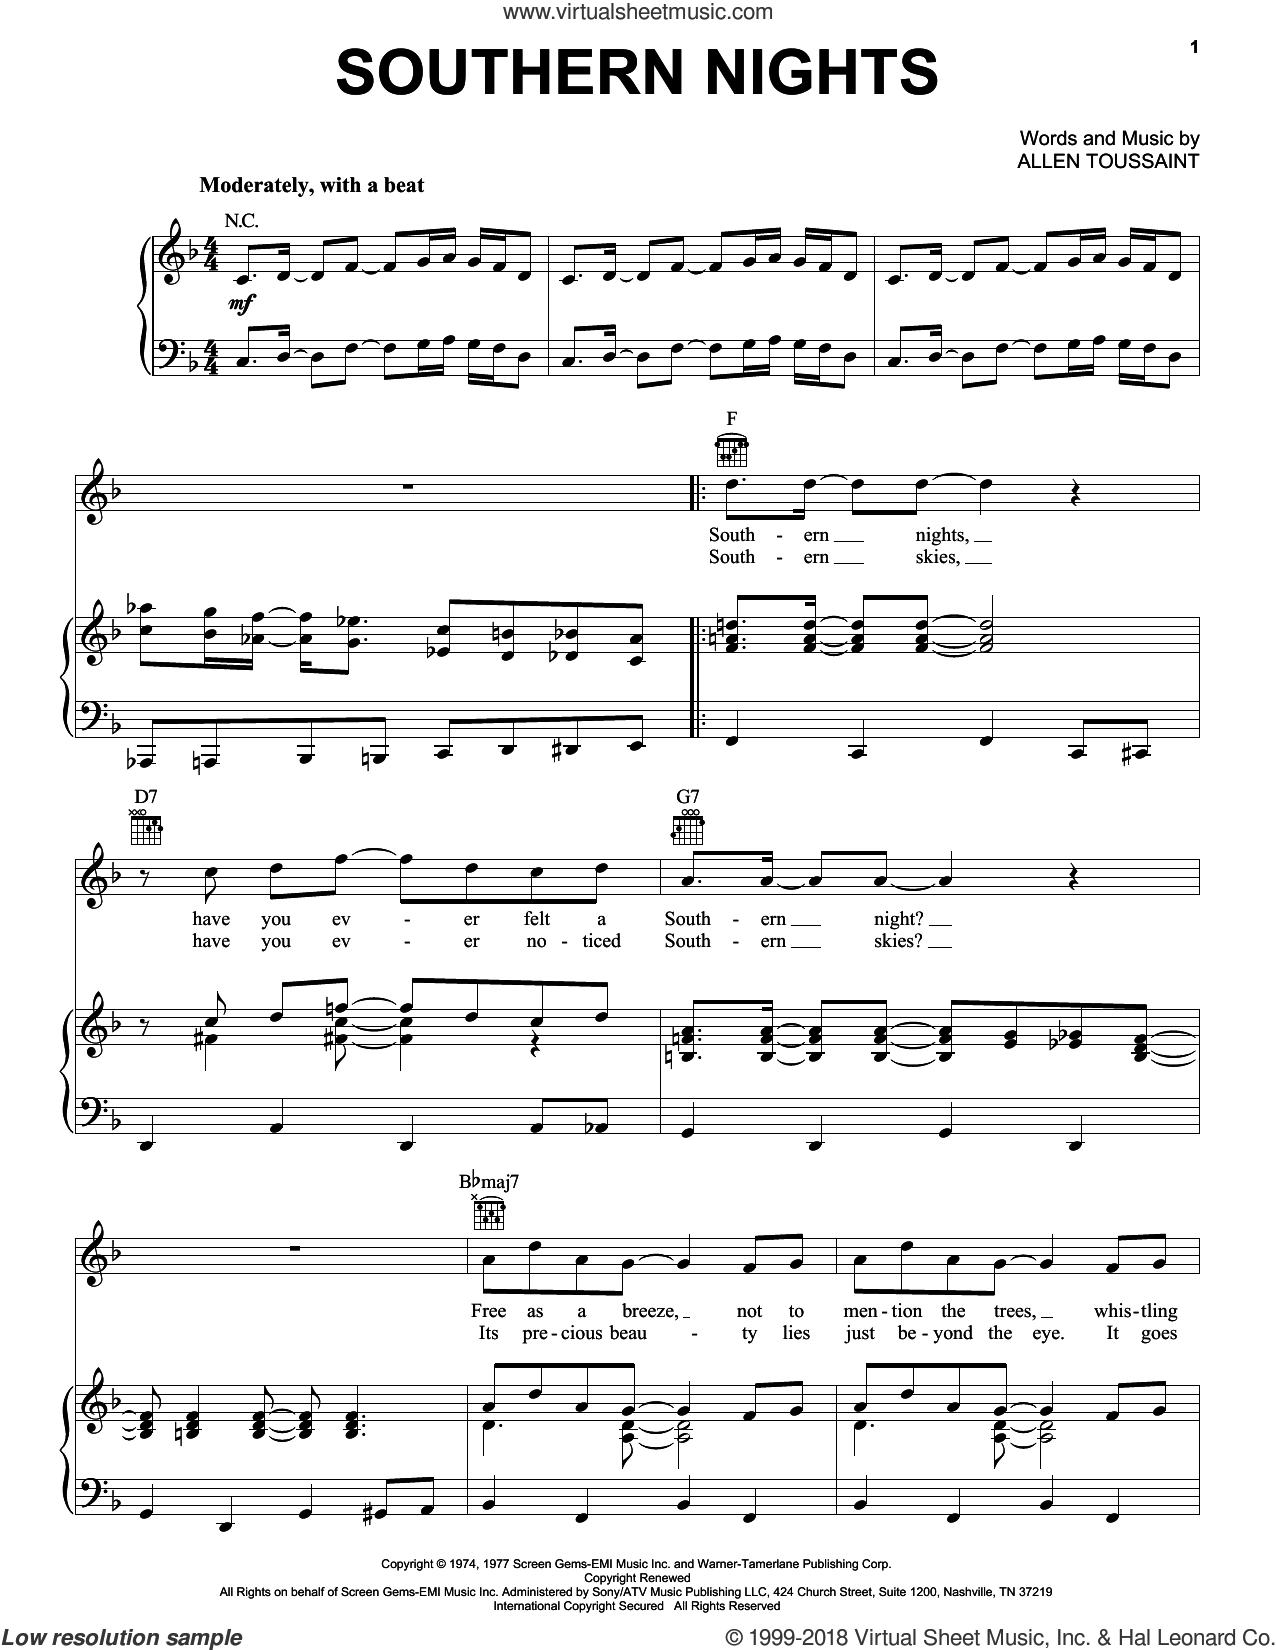 Southern Nights sheet music for voice, piano or guitar by Glen Campbell and Allen Toussaint, intermediate skill level